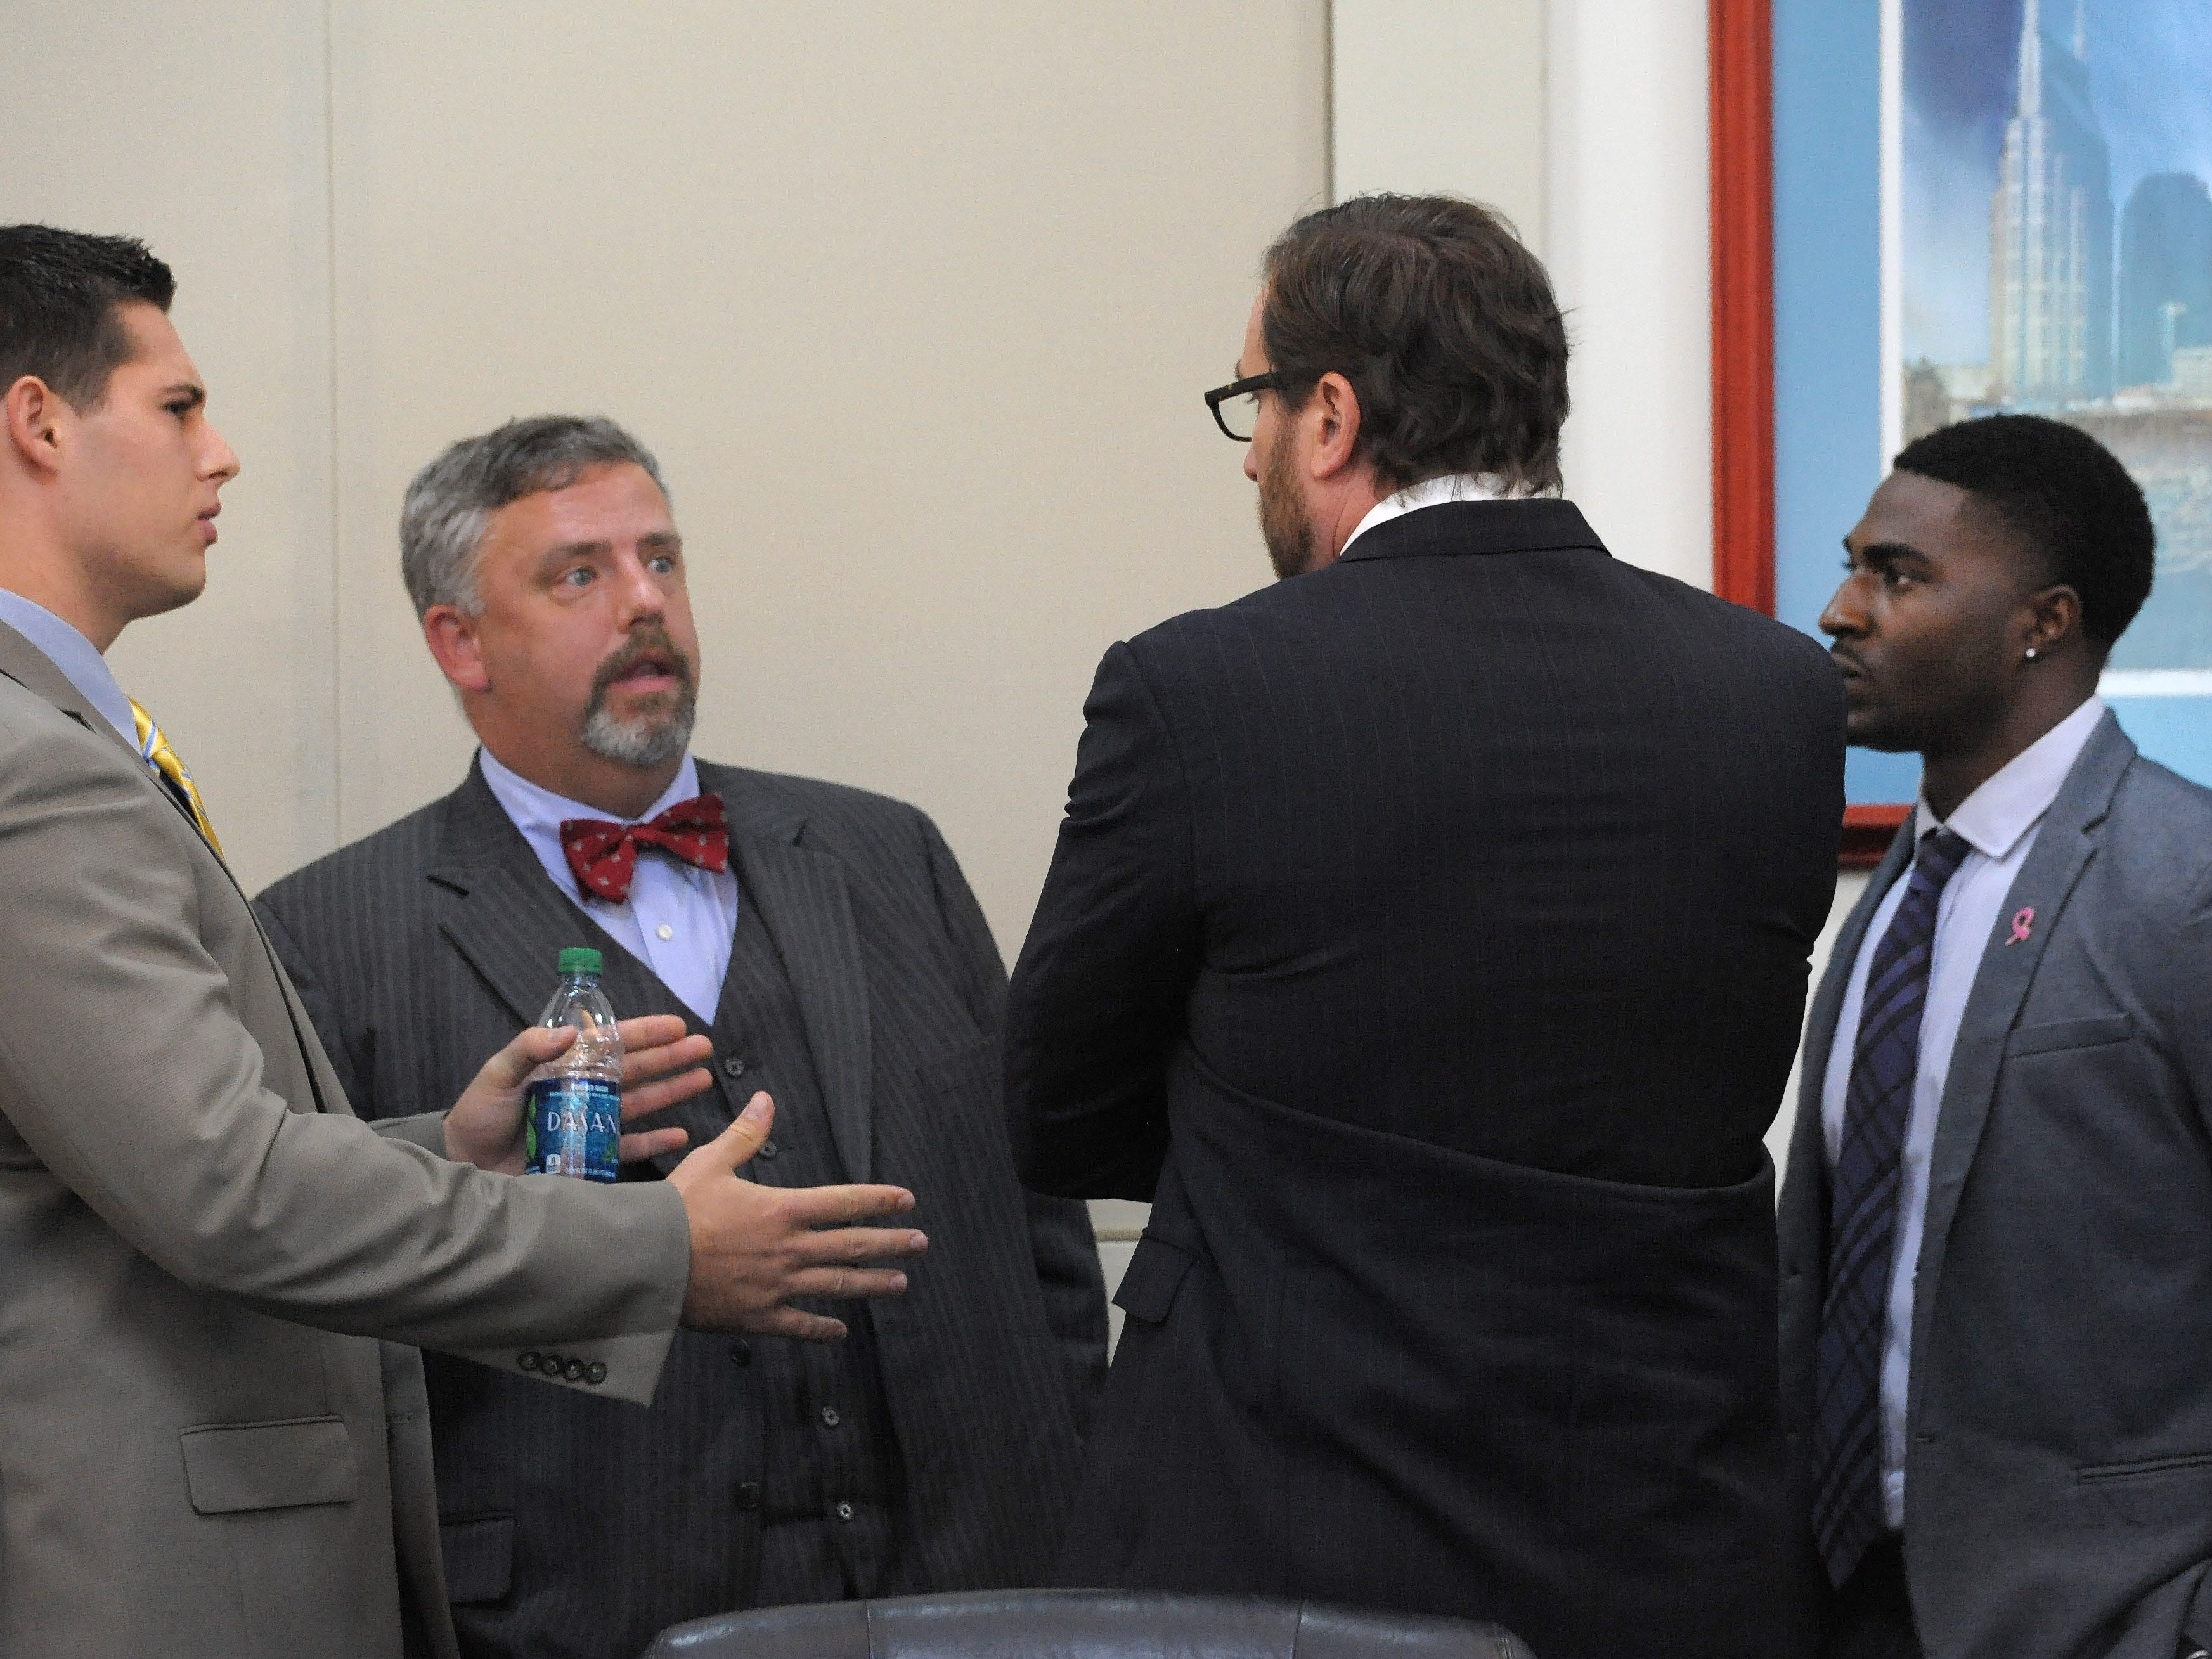 Attorneys Fletcher Long and Worrick Robinson talk with defendants Brandon Vandenburg and Corey Batey during a motions hearing on Wednesday in Nashville.